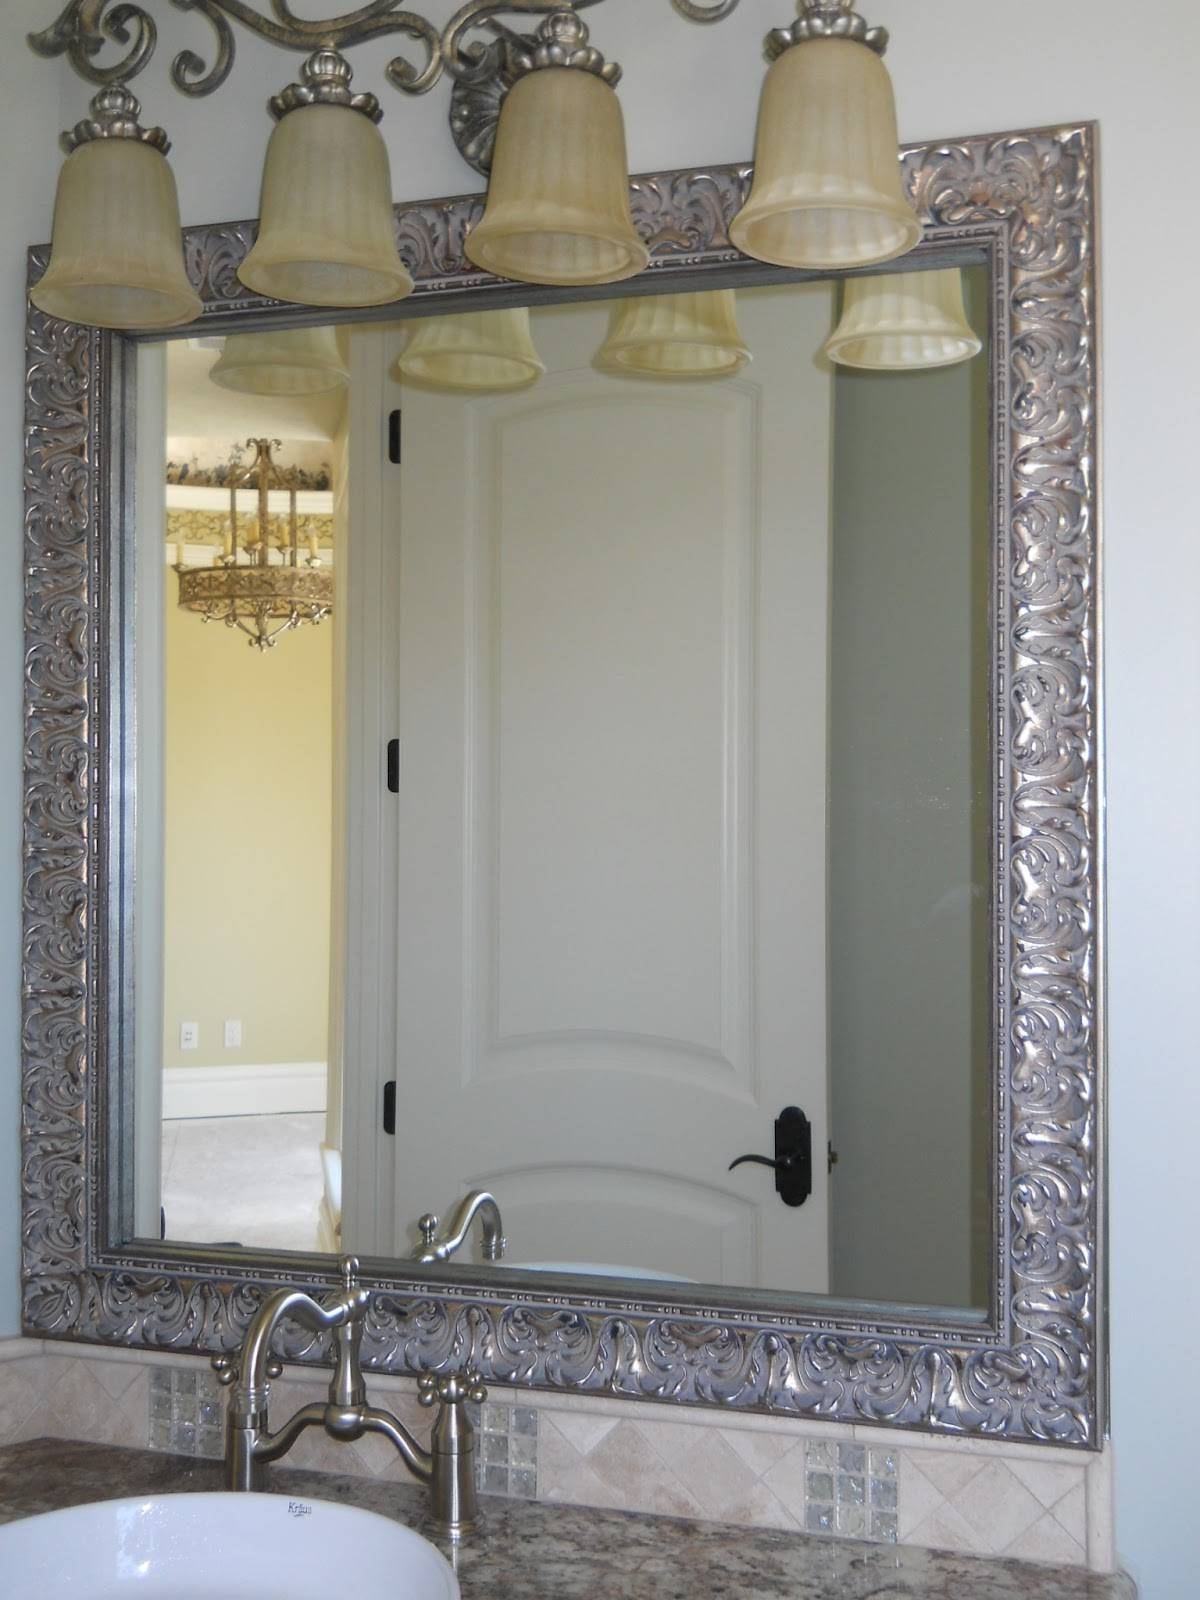 Bathroom Cabinets : White Vintage Mirror Decorative Wall Mirrors With Regard To Long Vintage Mirrors (View 3 of 15)